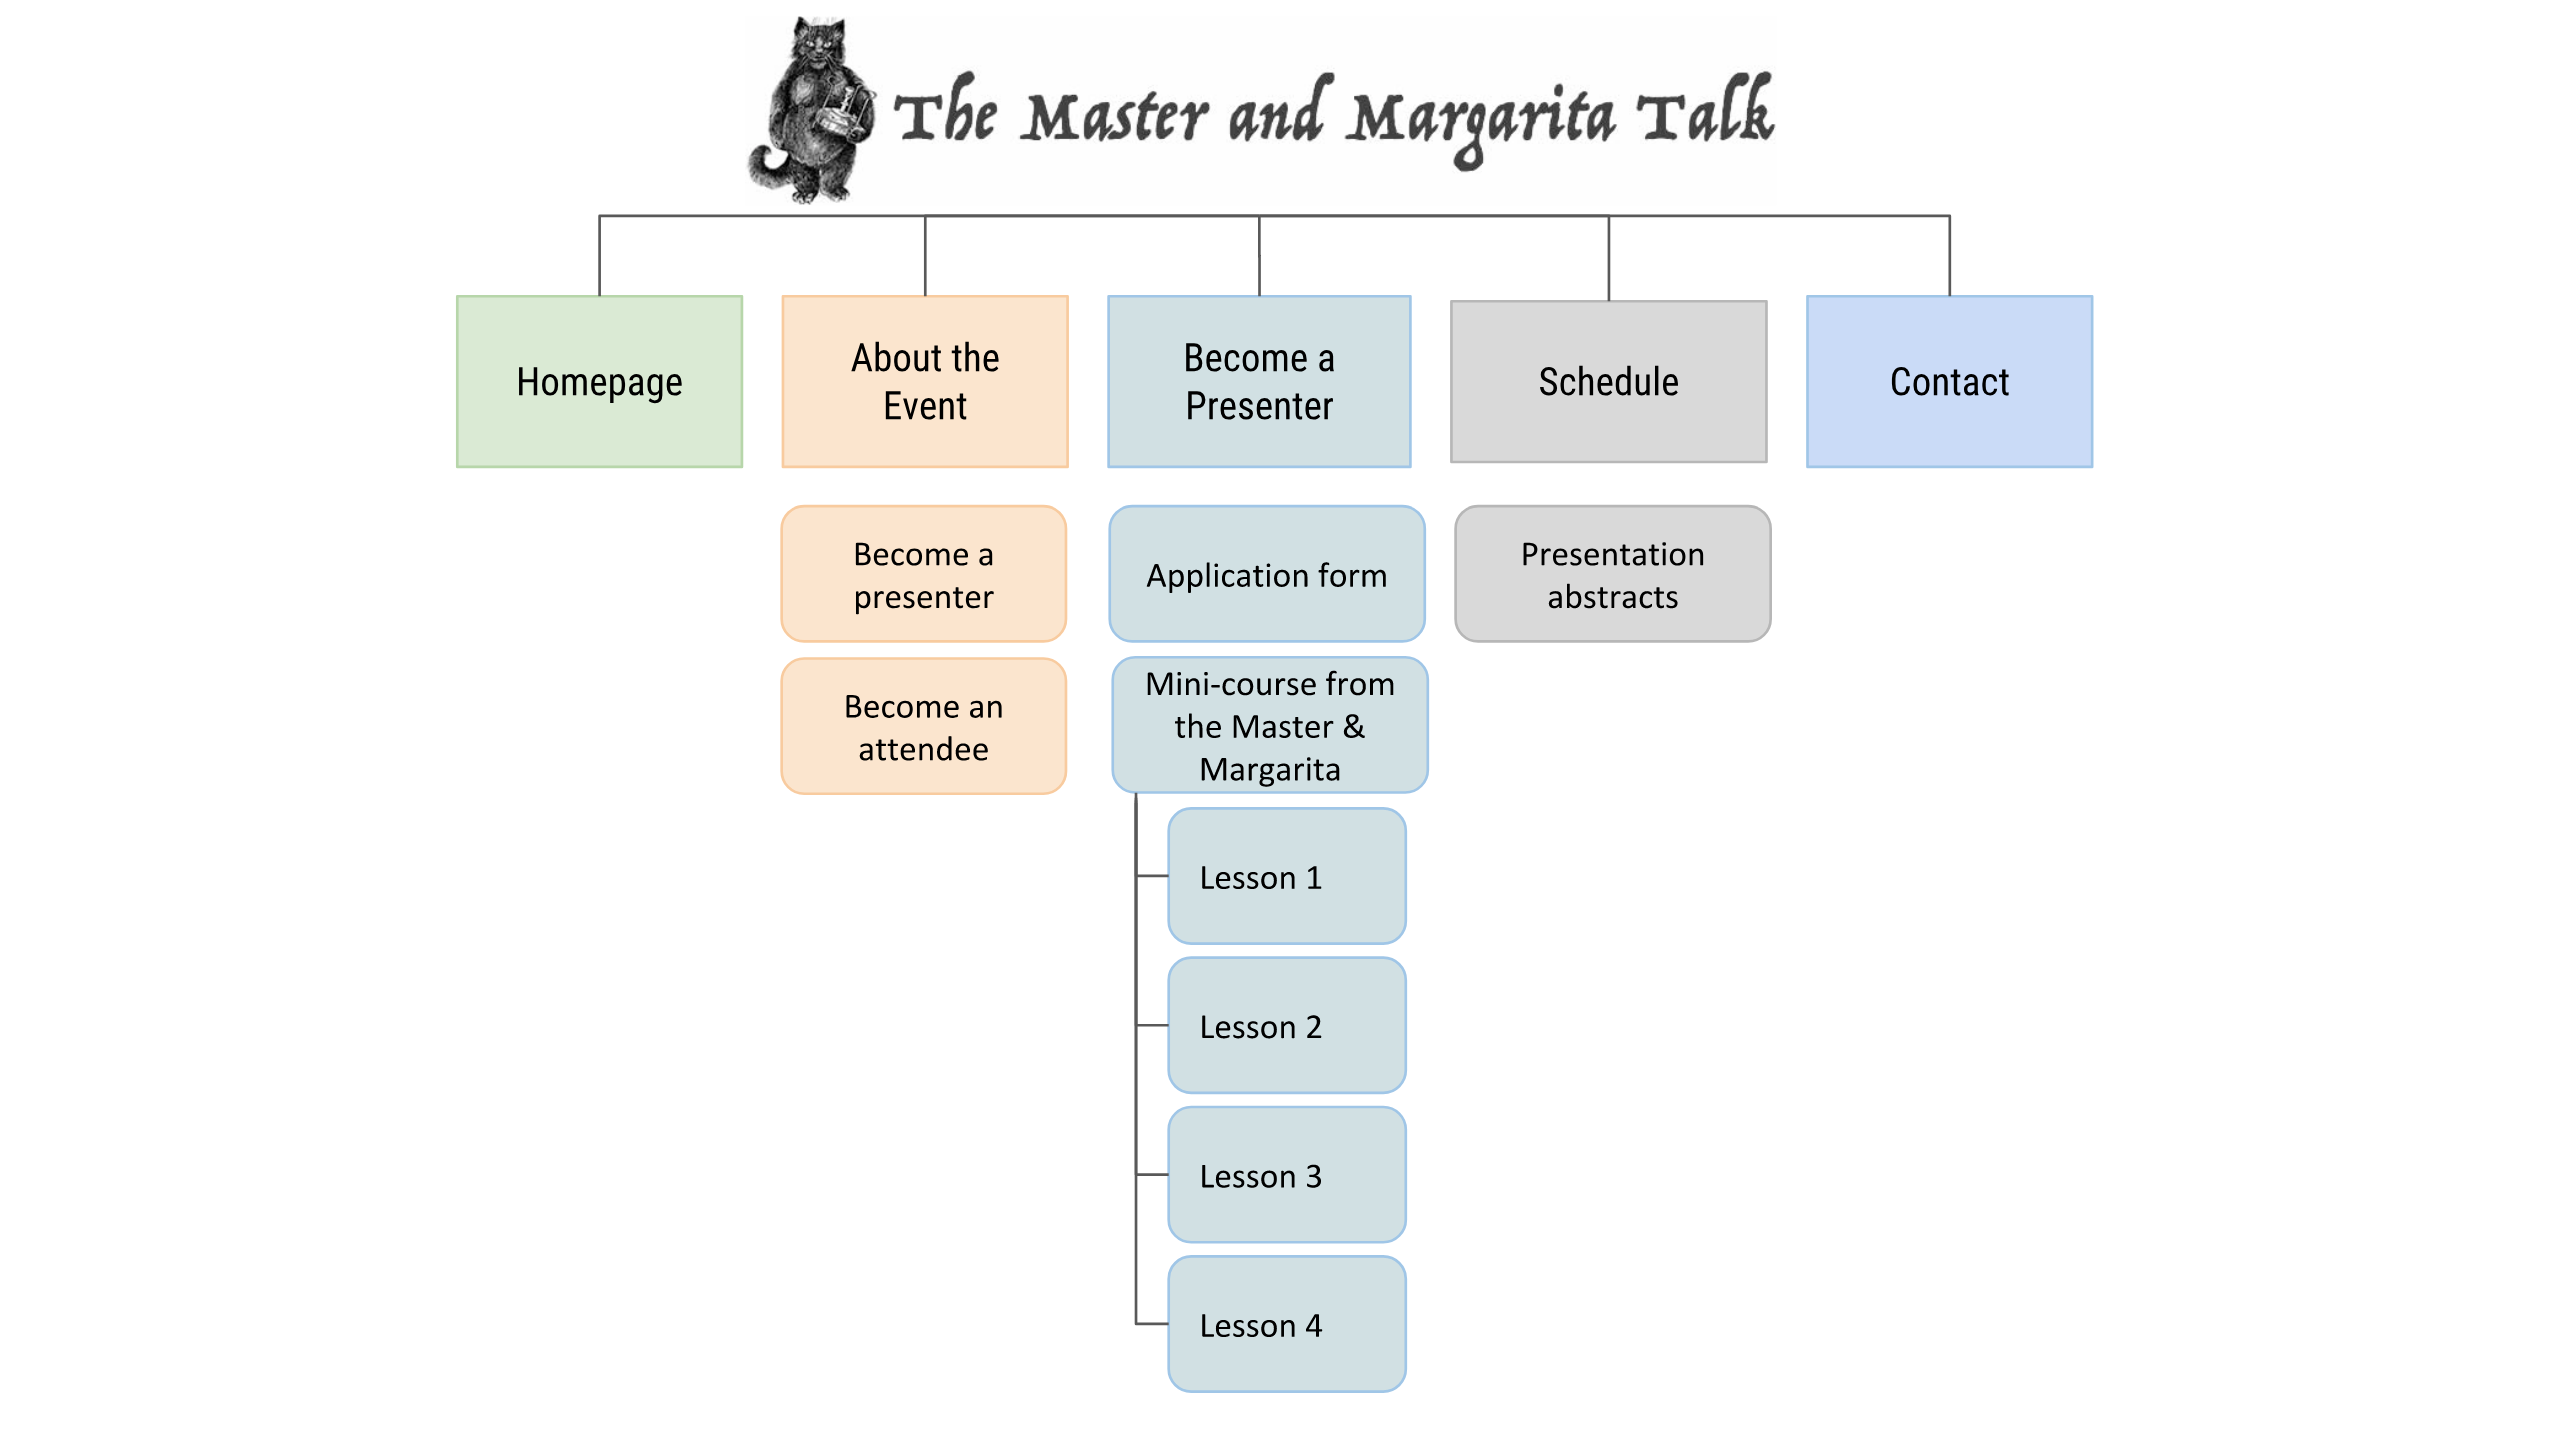 "The Master and Margarita Talk website consists of five main sections. These are ""Homepage"", ""About the Event"", ""Become A Presenter"", ""Schedule"" and ""Contact""."